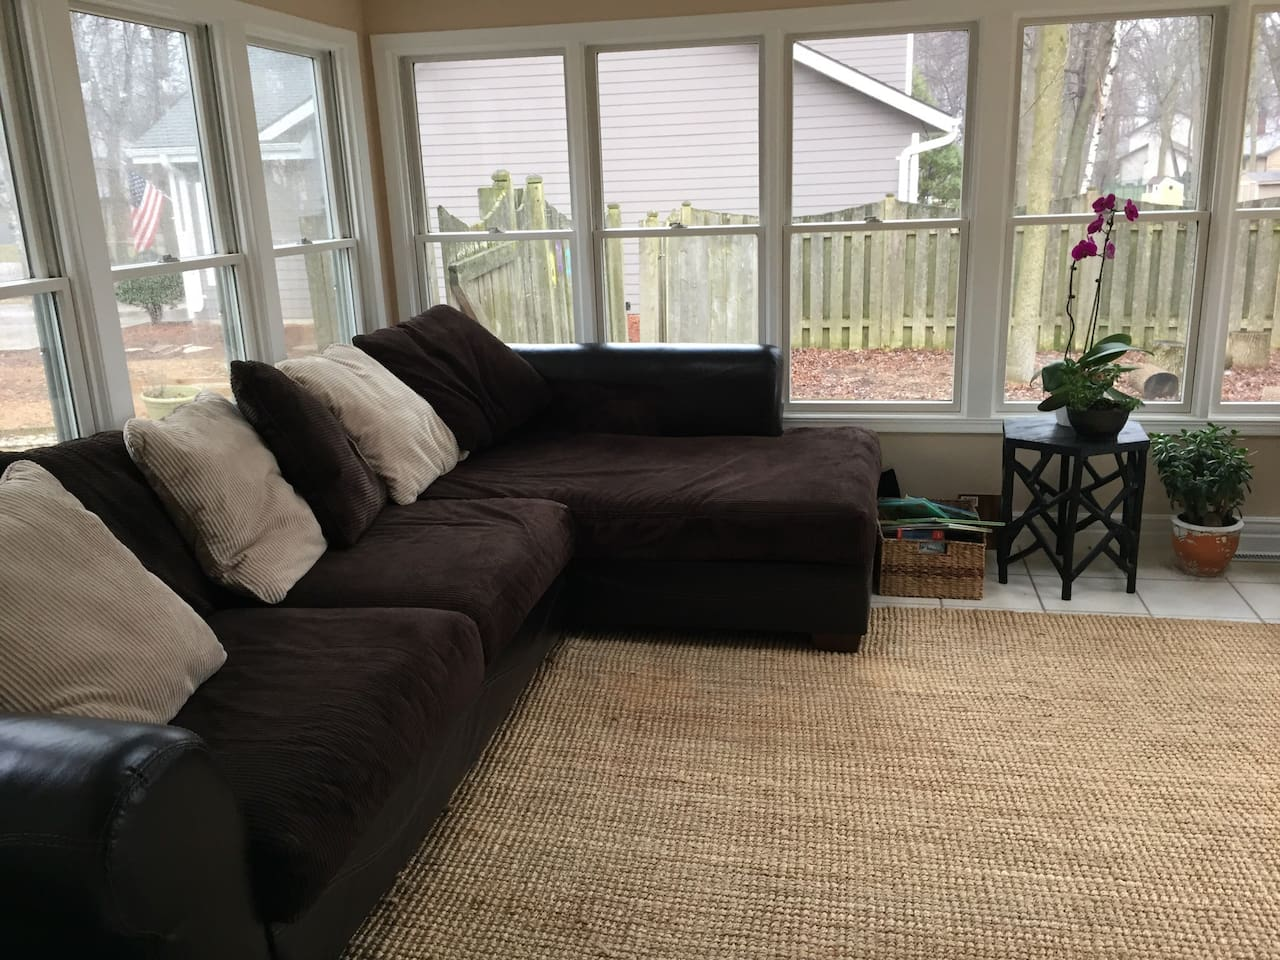 Big comfy couch in sunroom... GREAT place to nap!